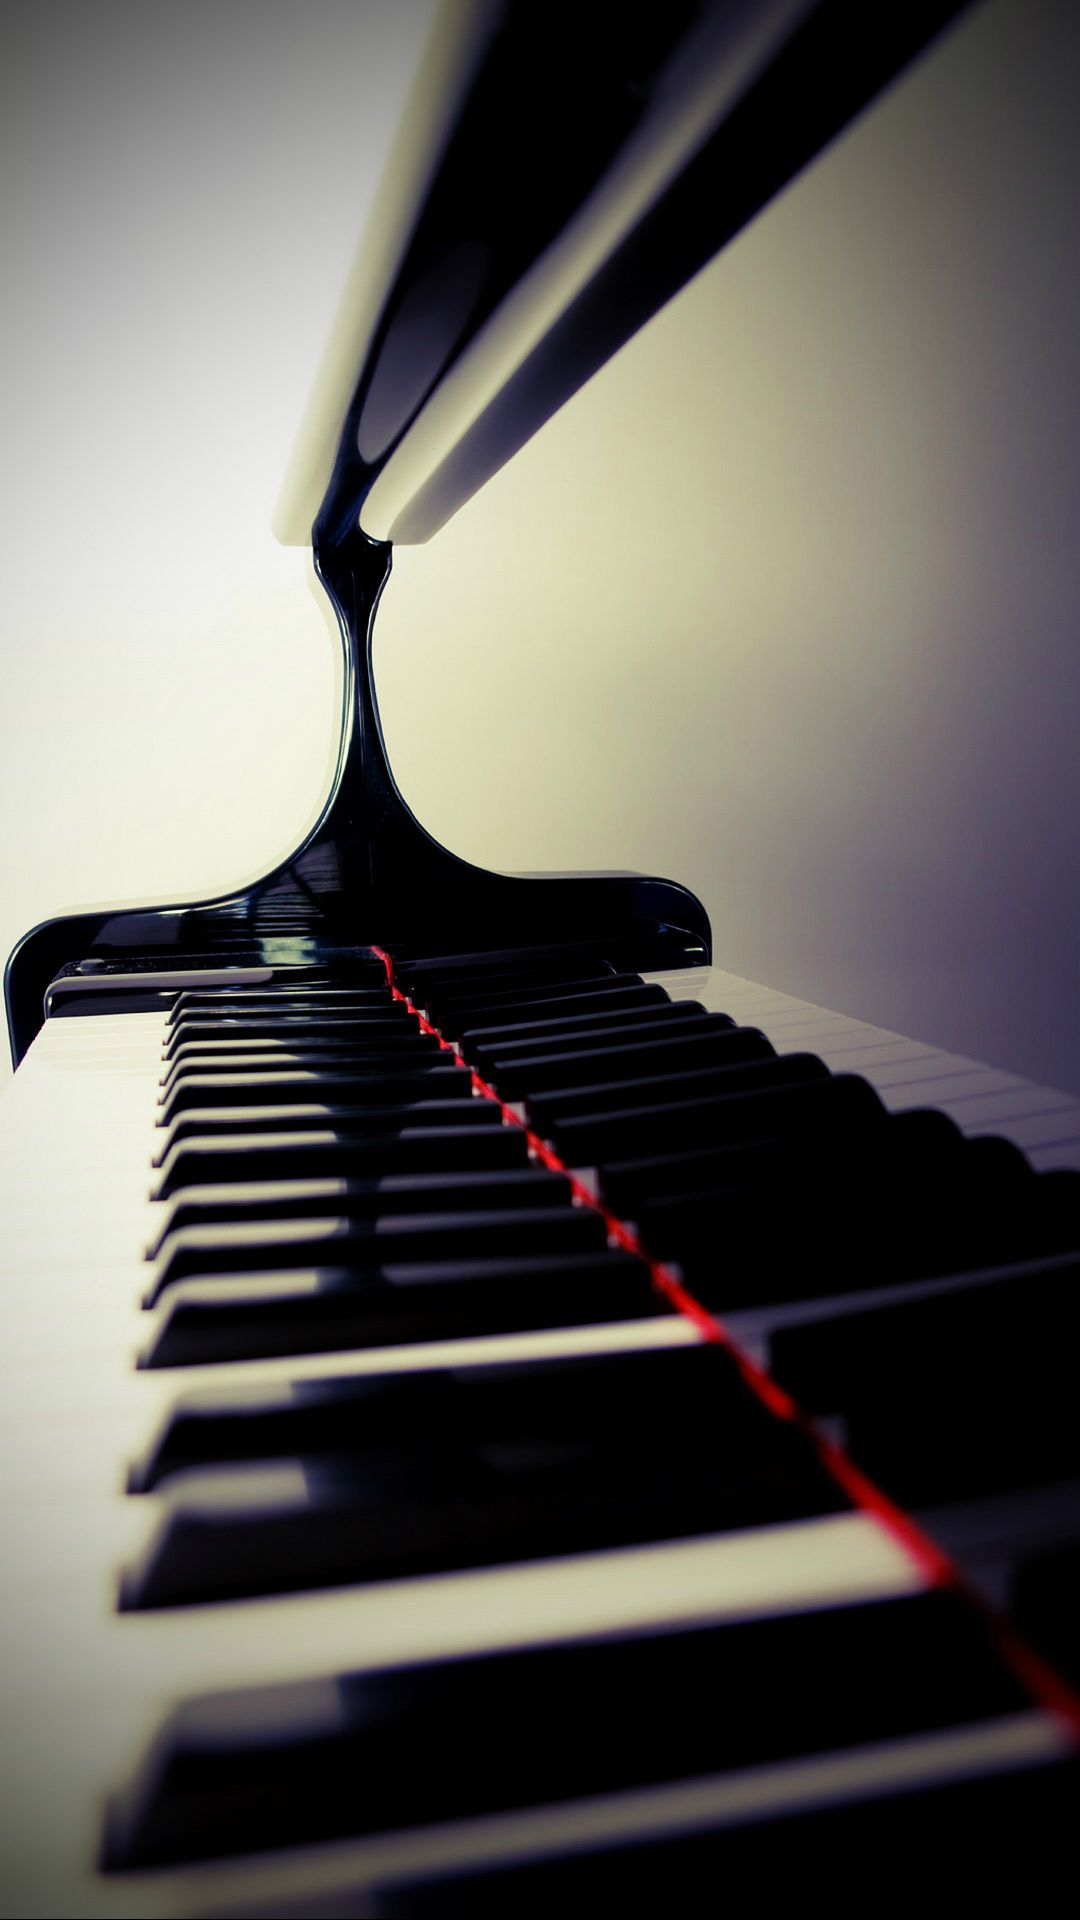 ↑↑TAP AND GET THE FREE APP Stylish Piano Keys Black and White